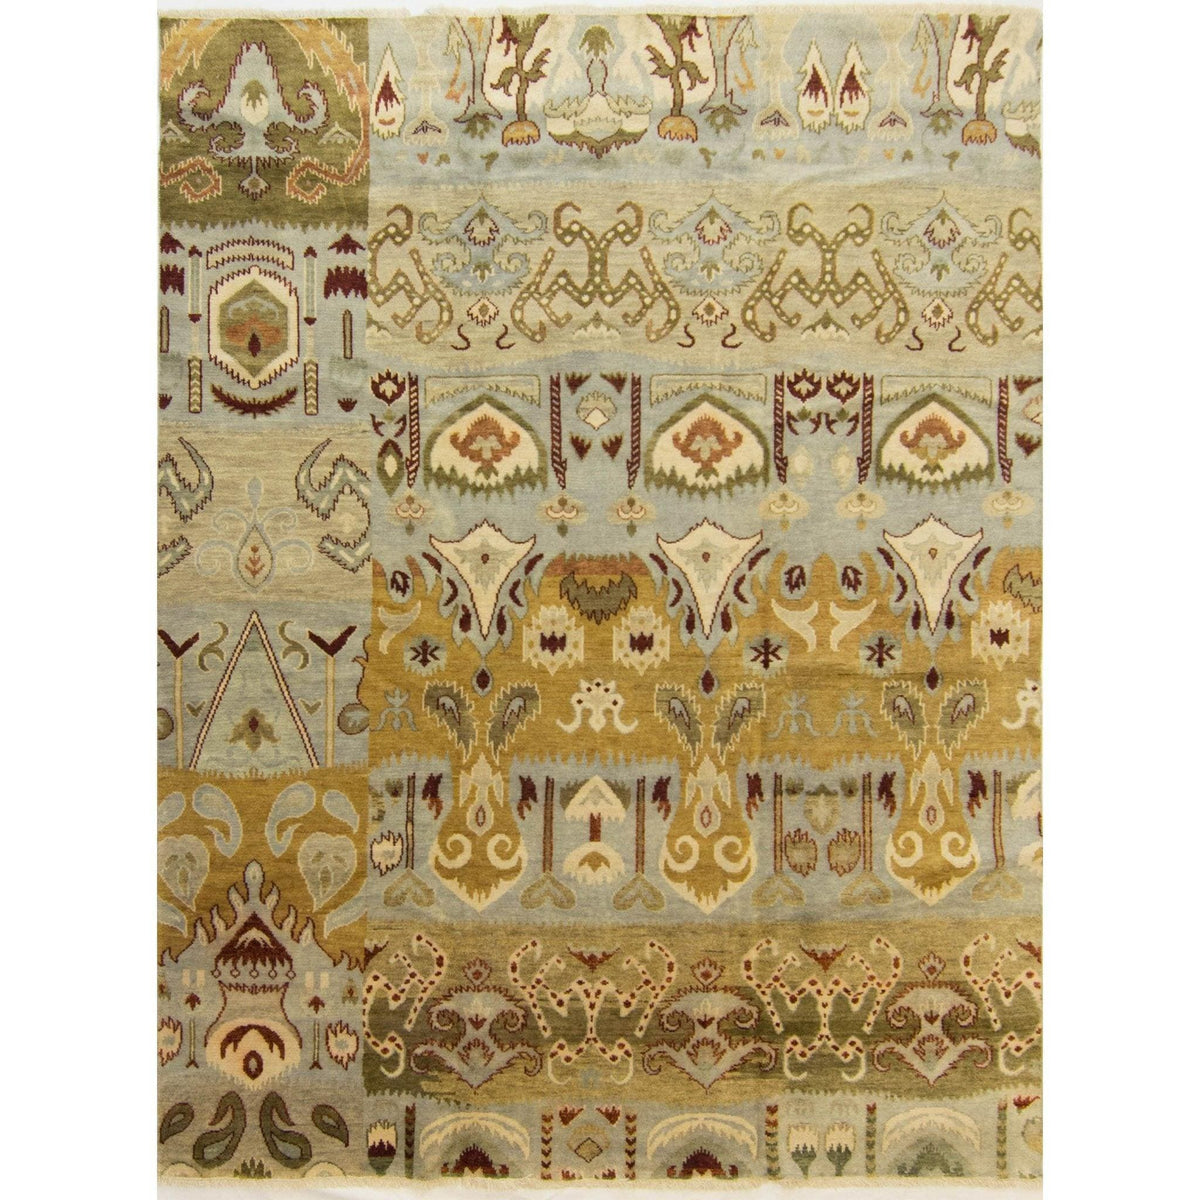 Modern Hand-knotted Wool Khothan Rug 242cm x 293cm Persian-Rug | House-of-Haghi | NewMarket | Auckland | NZ | Handmade Persian Rugs | Hand Knotted Persian Rugs